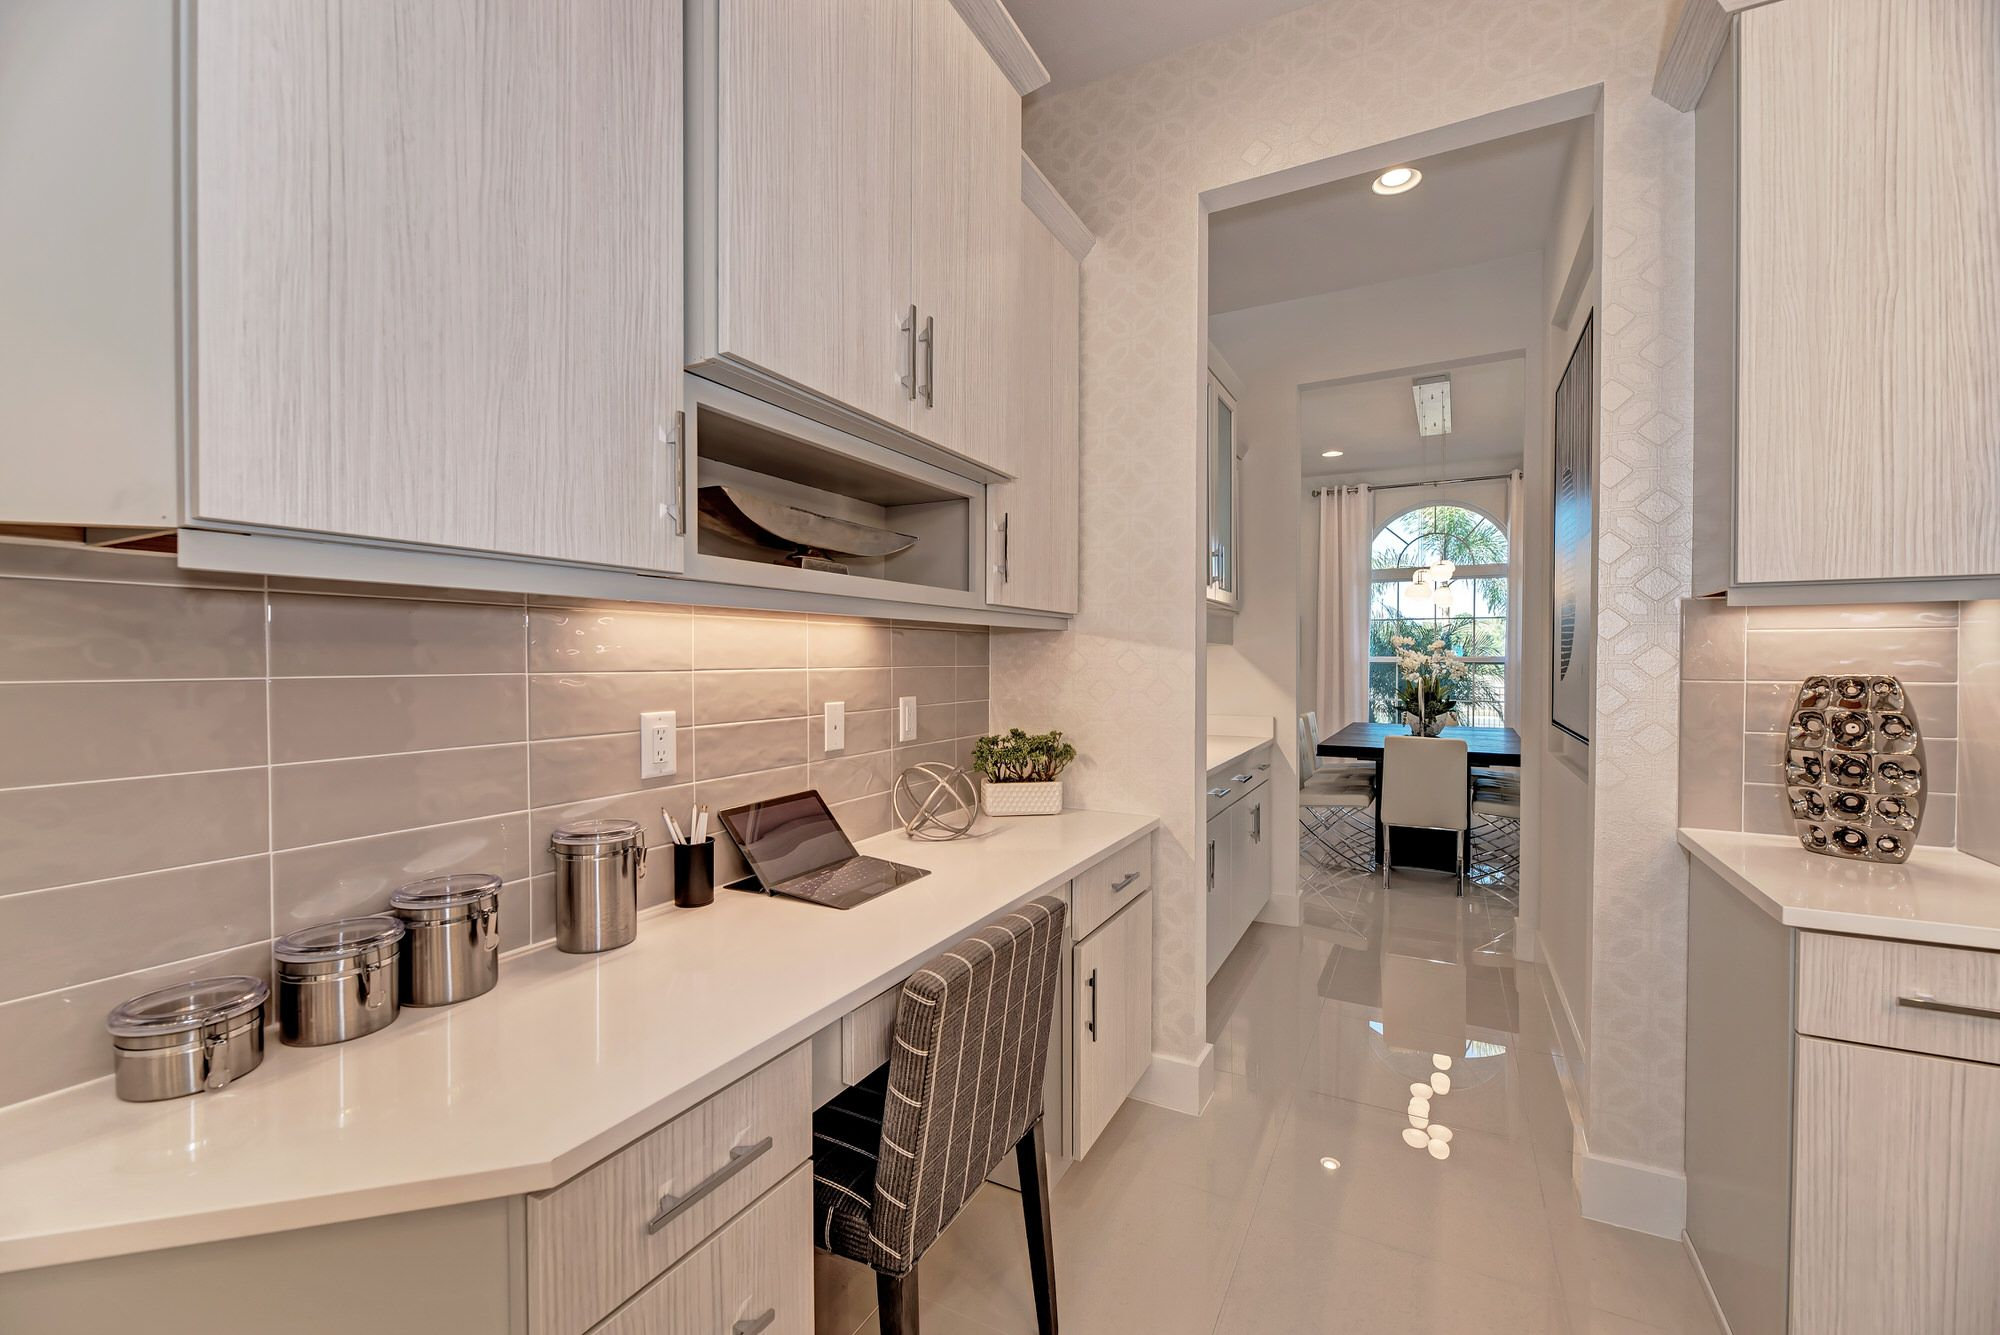 Kitchen featured in the Barbados 2800-The Reserve By Medallion Home in Sarasota-Bradenton, FL